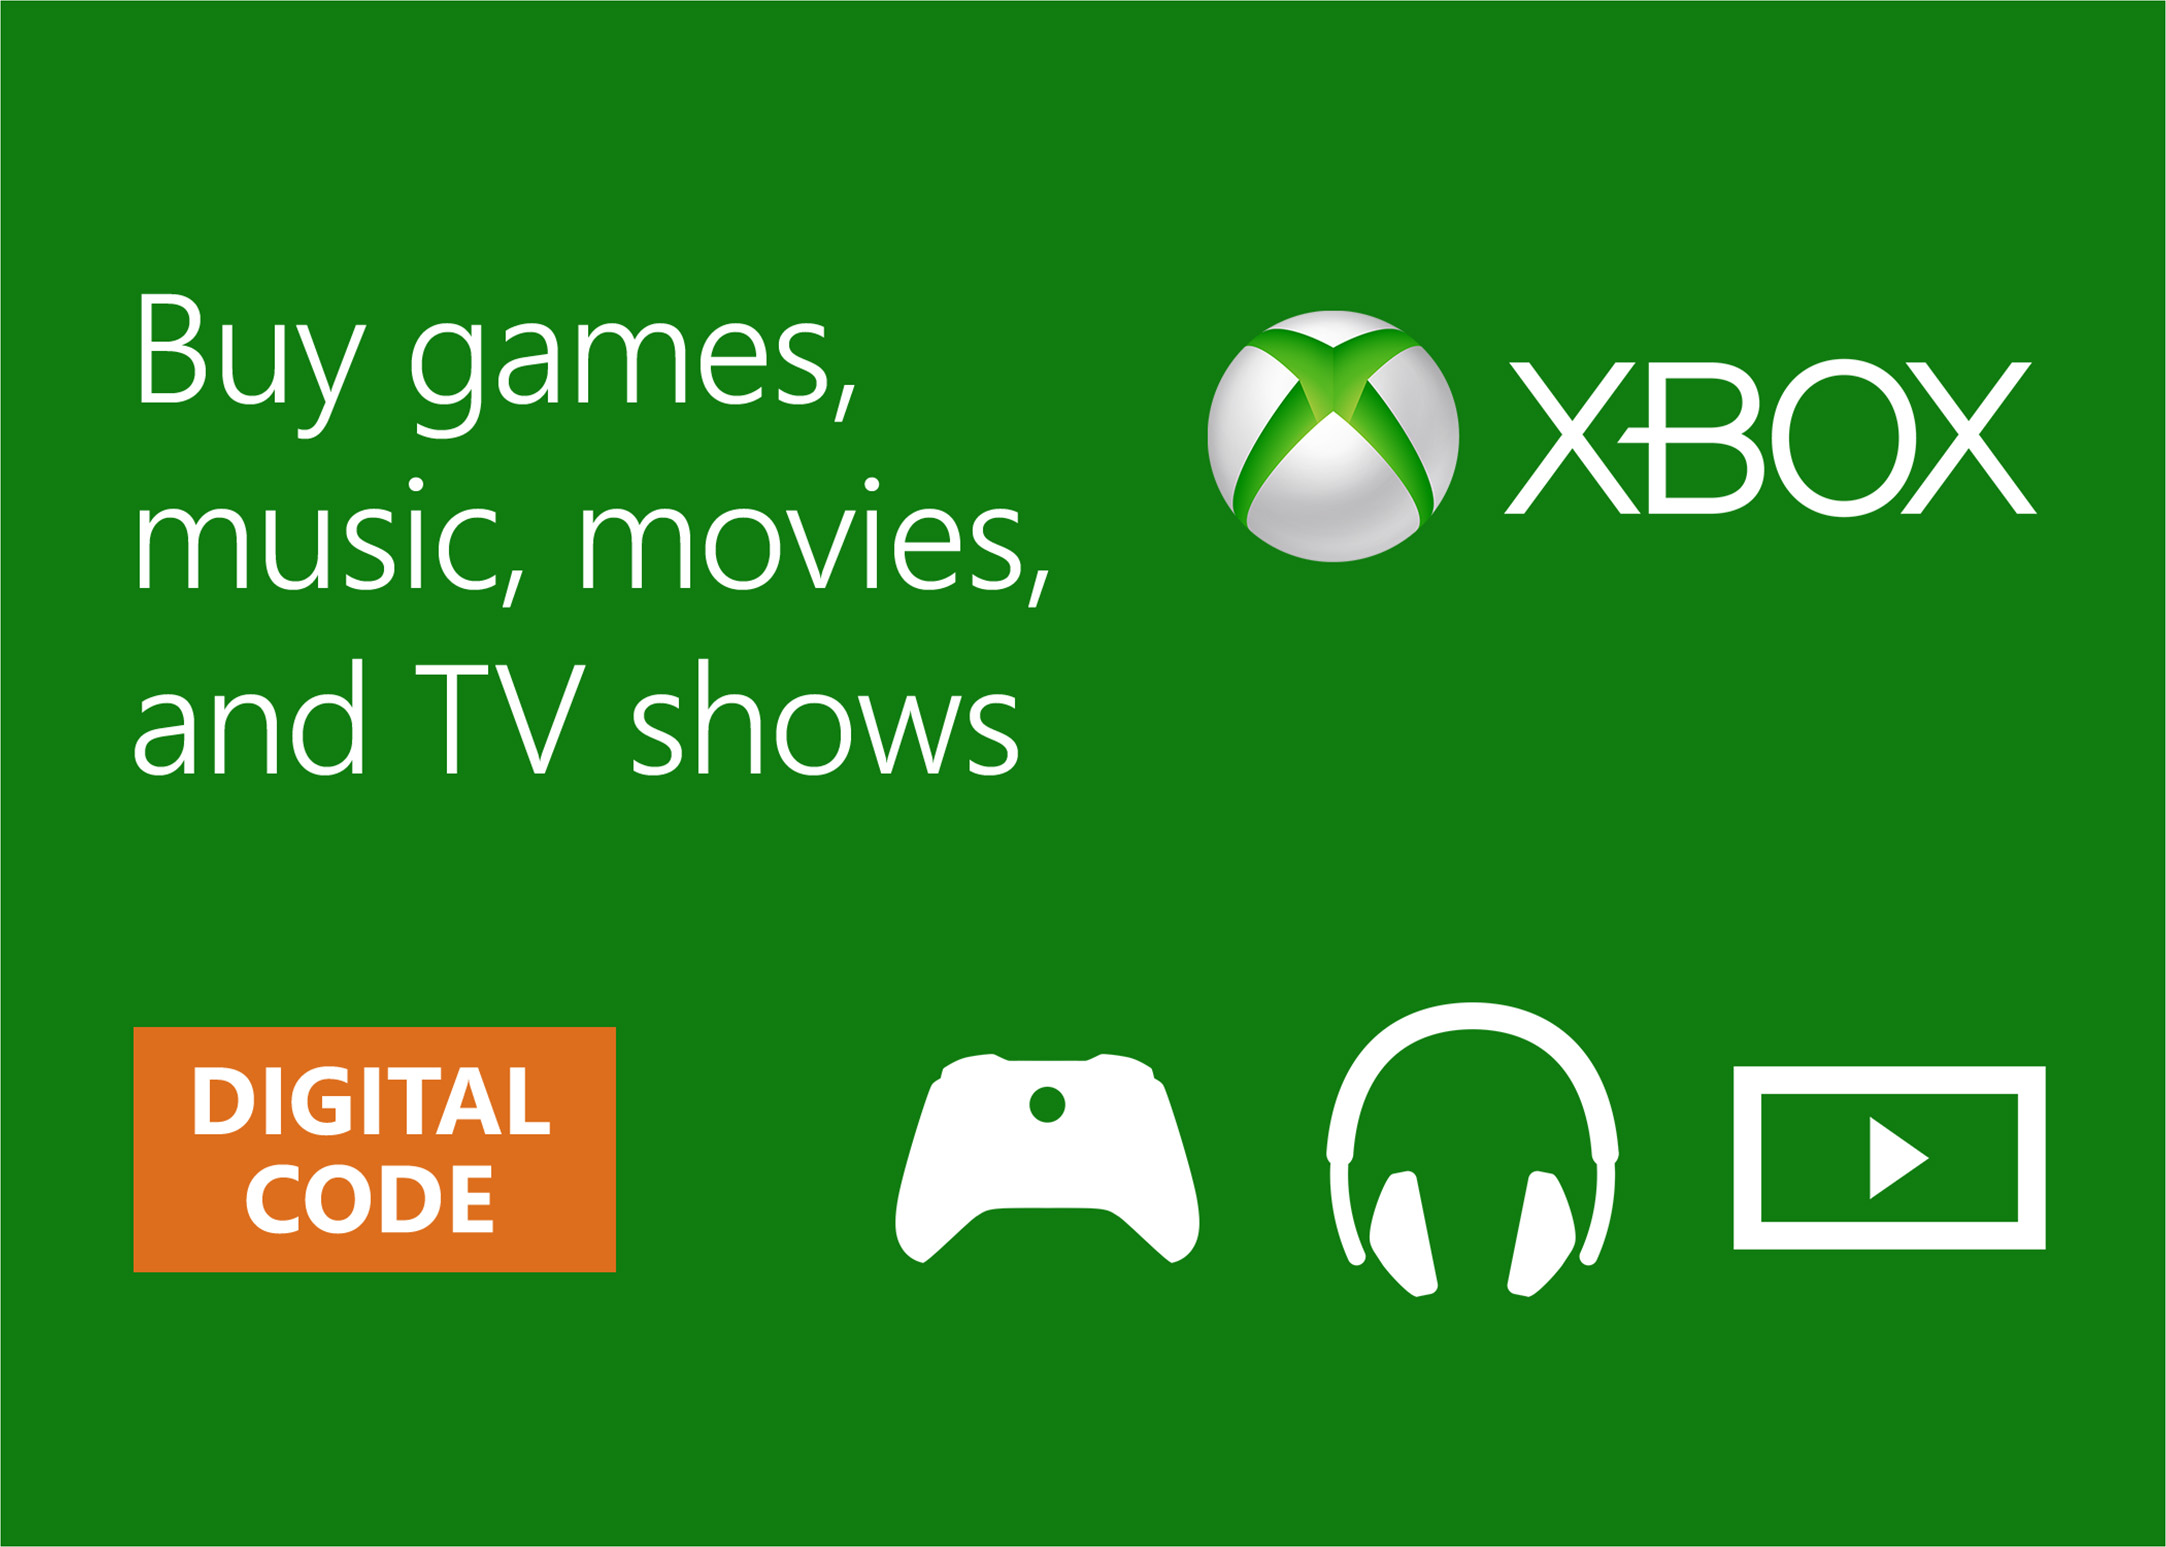 Xbox Digital Gift Card: $2.00